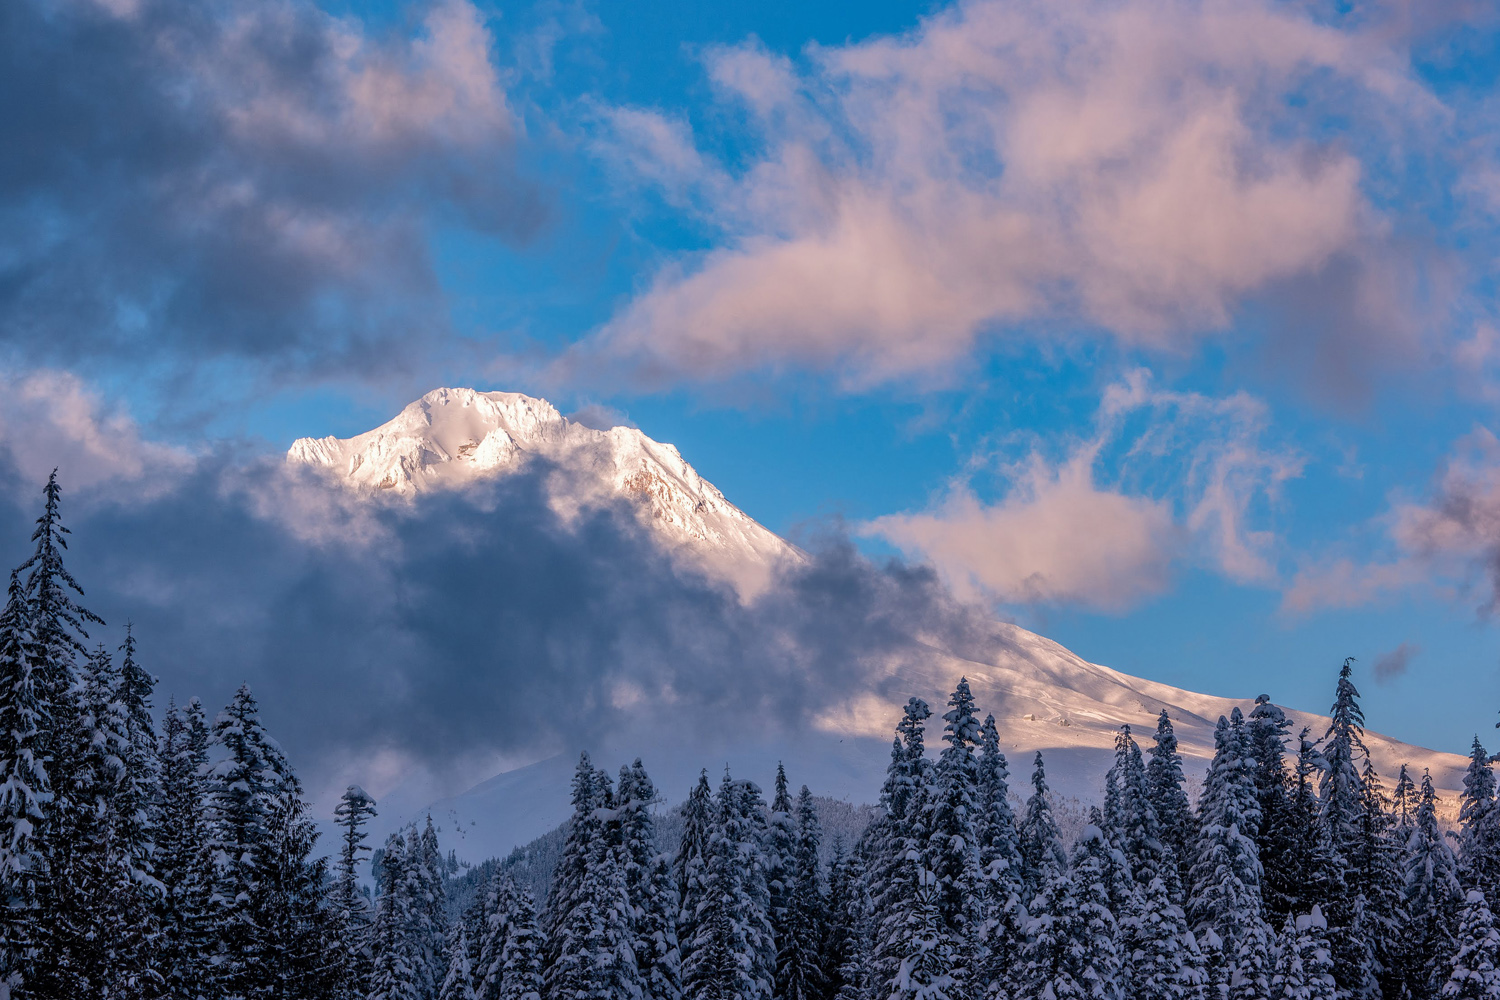 Wasim Muklashy Photography_Wasim of Nazareth_Mount Hood_Oregon_105 copy.jpg